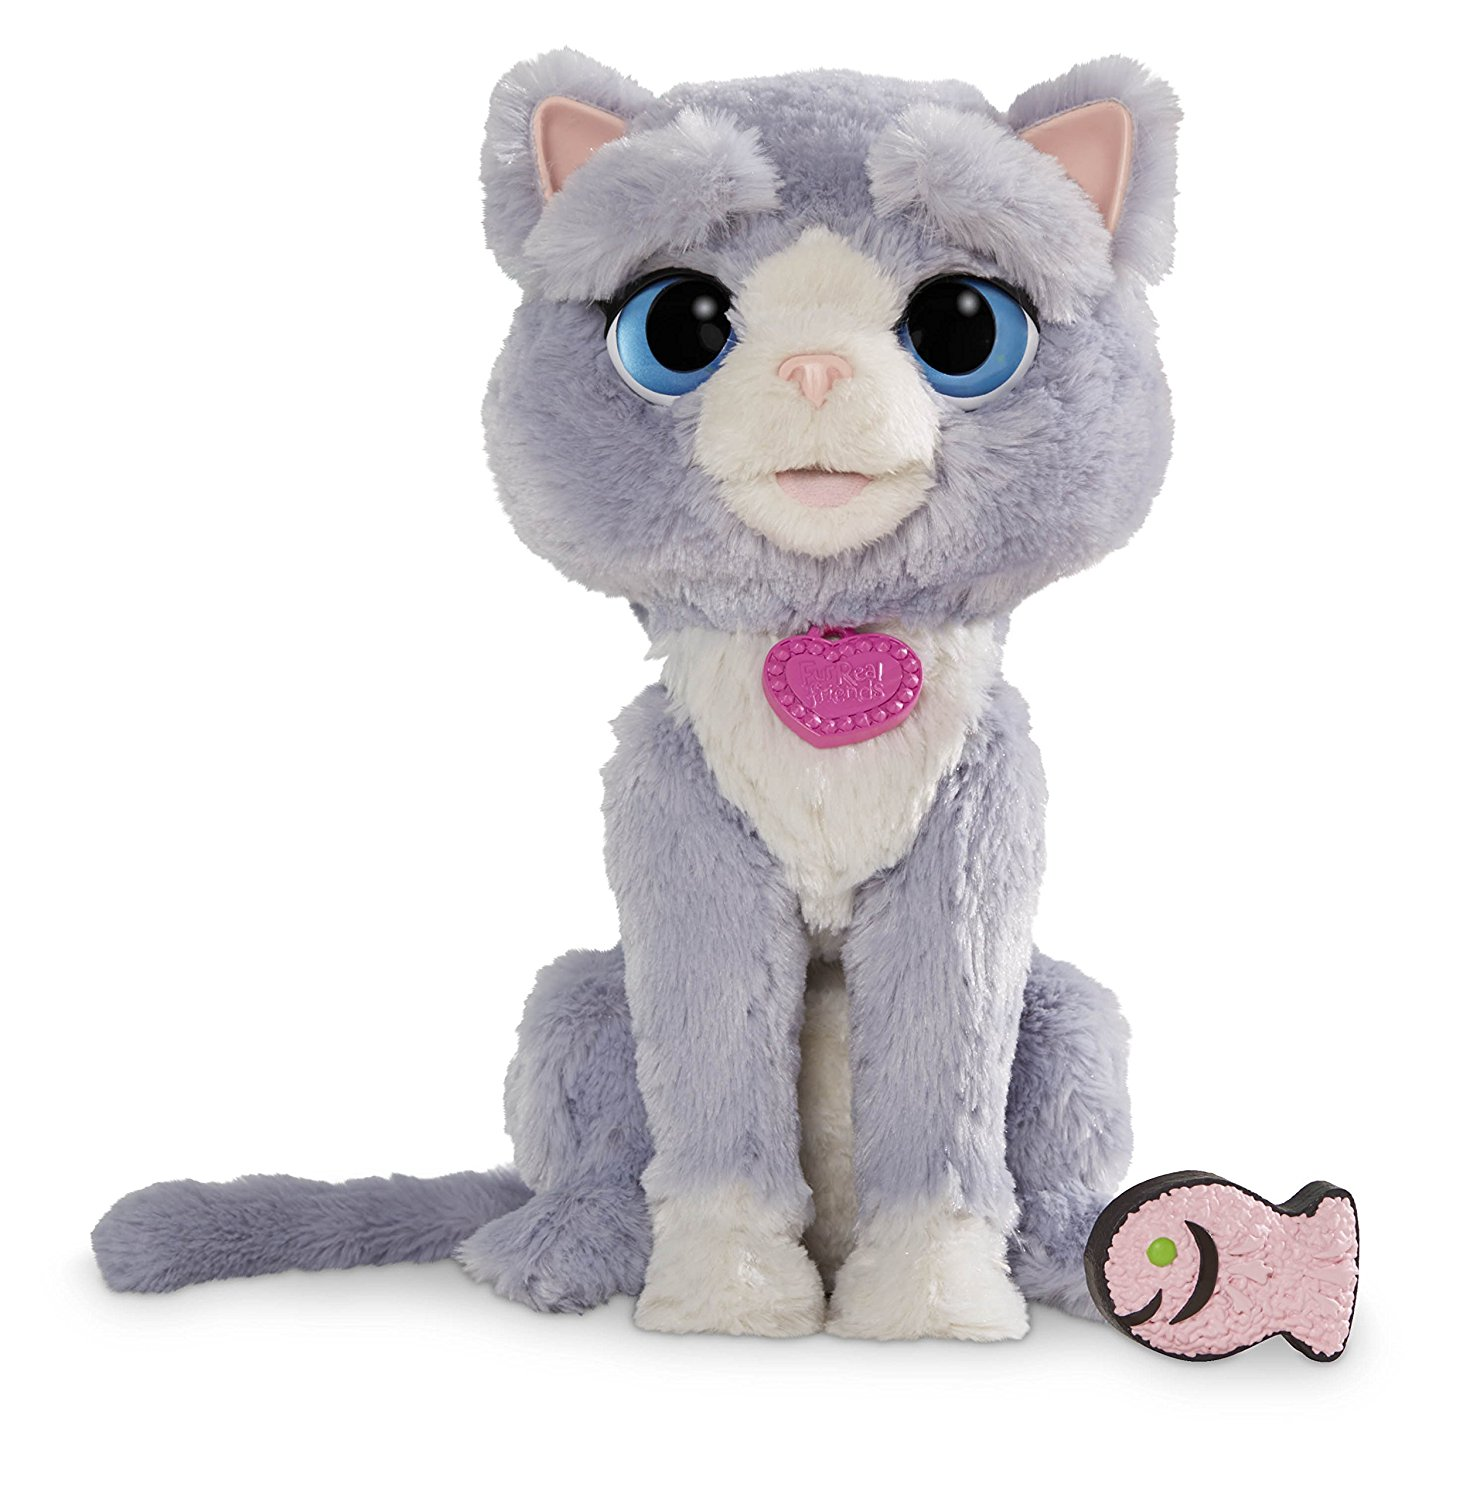 NEW FurReal Friends Bootsie Interactive Pet Cat Toy - Grey